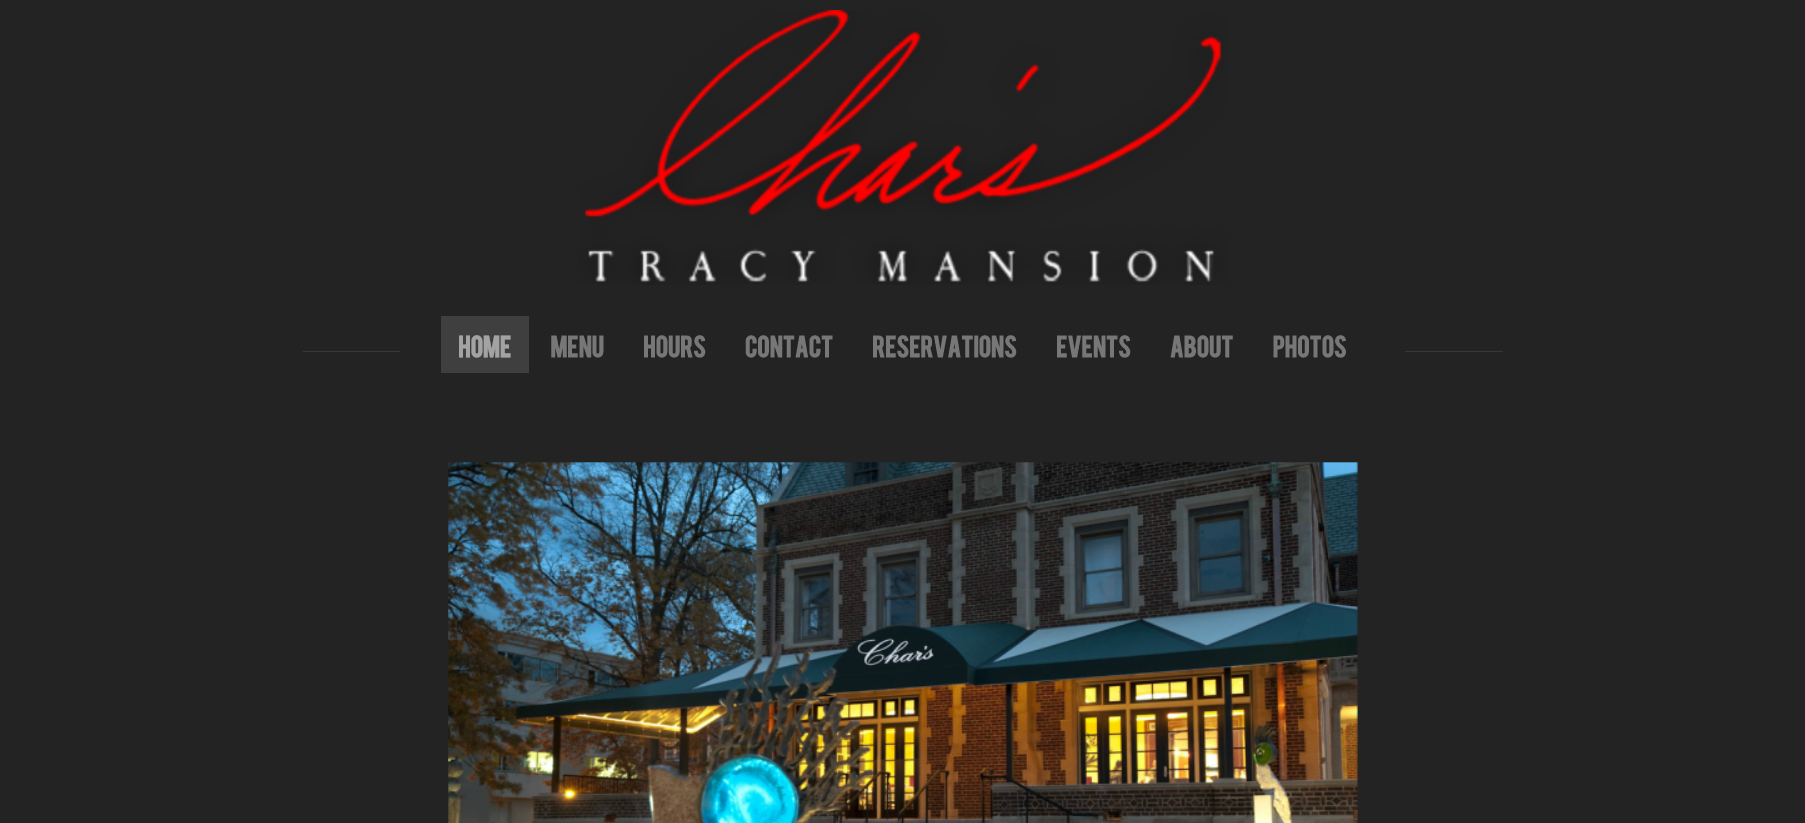 Char's at Tracy Mansion